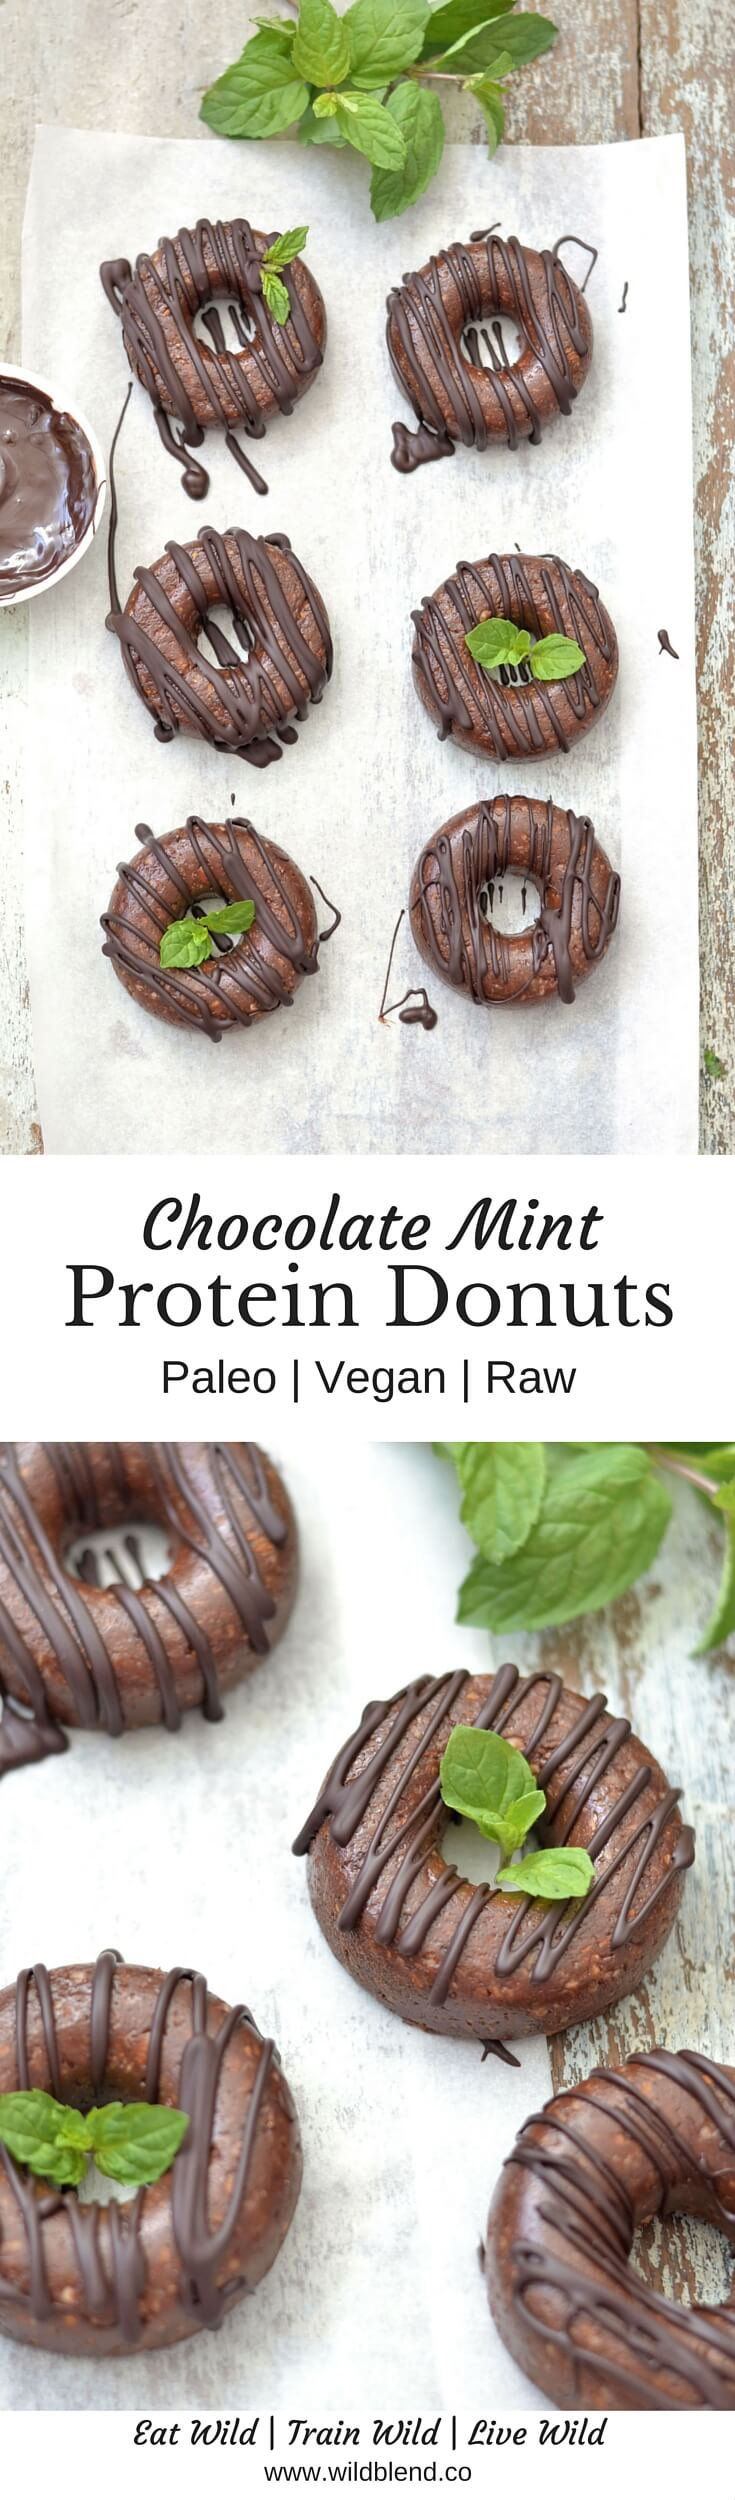 These raw Vegan and Paleo friendly Chocolate Mint Protein Donuts are free from gluten, wheat, dairy and refined sugar -- YES they're basically guilt free! Get the recipe here: http://www.wildblend.co/single-post/2016/06/04/Raw-Choc-Mint-Protein-Donuts